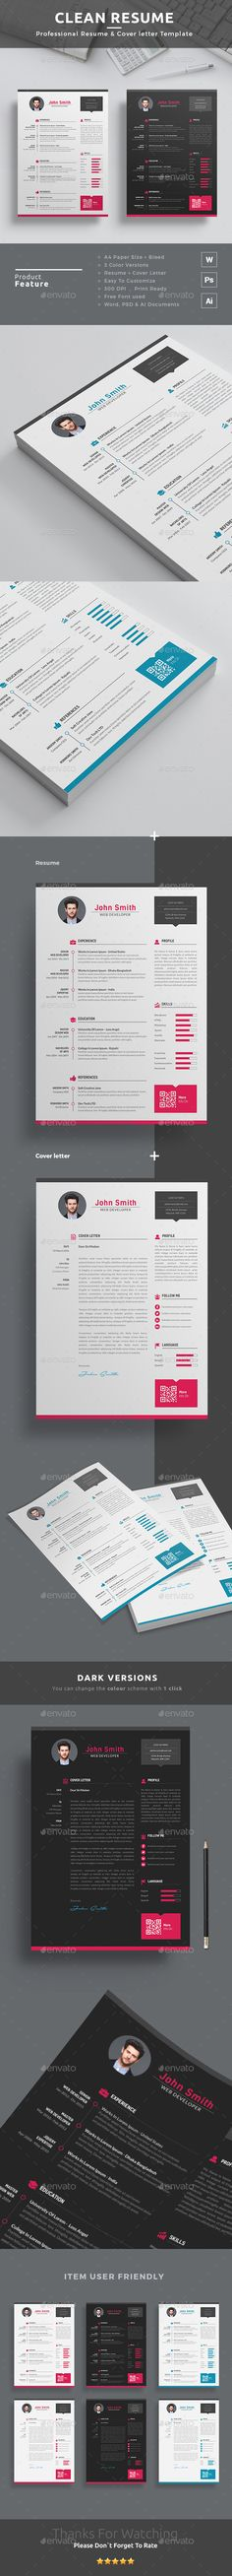 Cv Free Download Templates%0A Awesome Creative and Elegant Resume Template Free PSD  Download Creative  and Elegant Resume Template Free PSD  This free resume template is perfect u